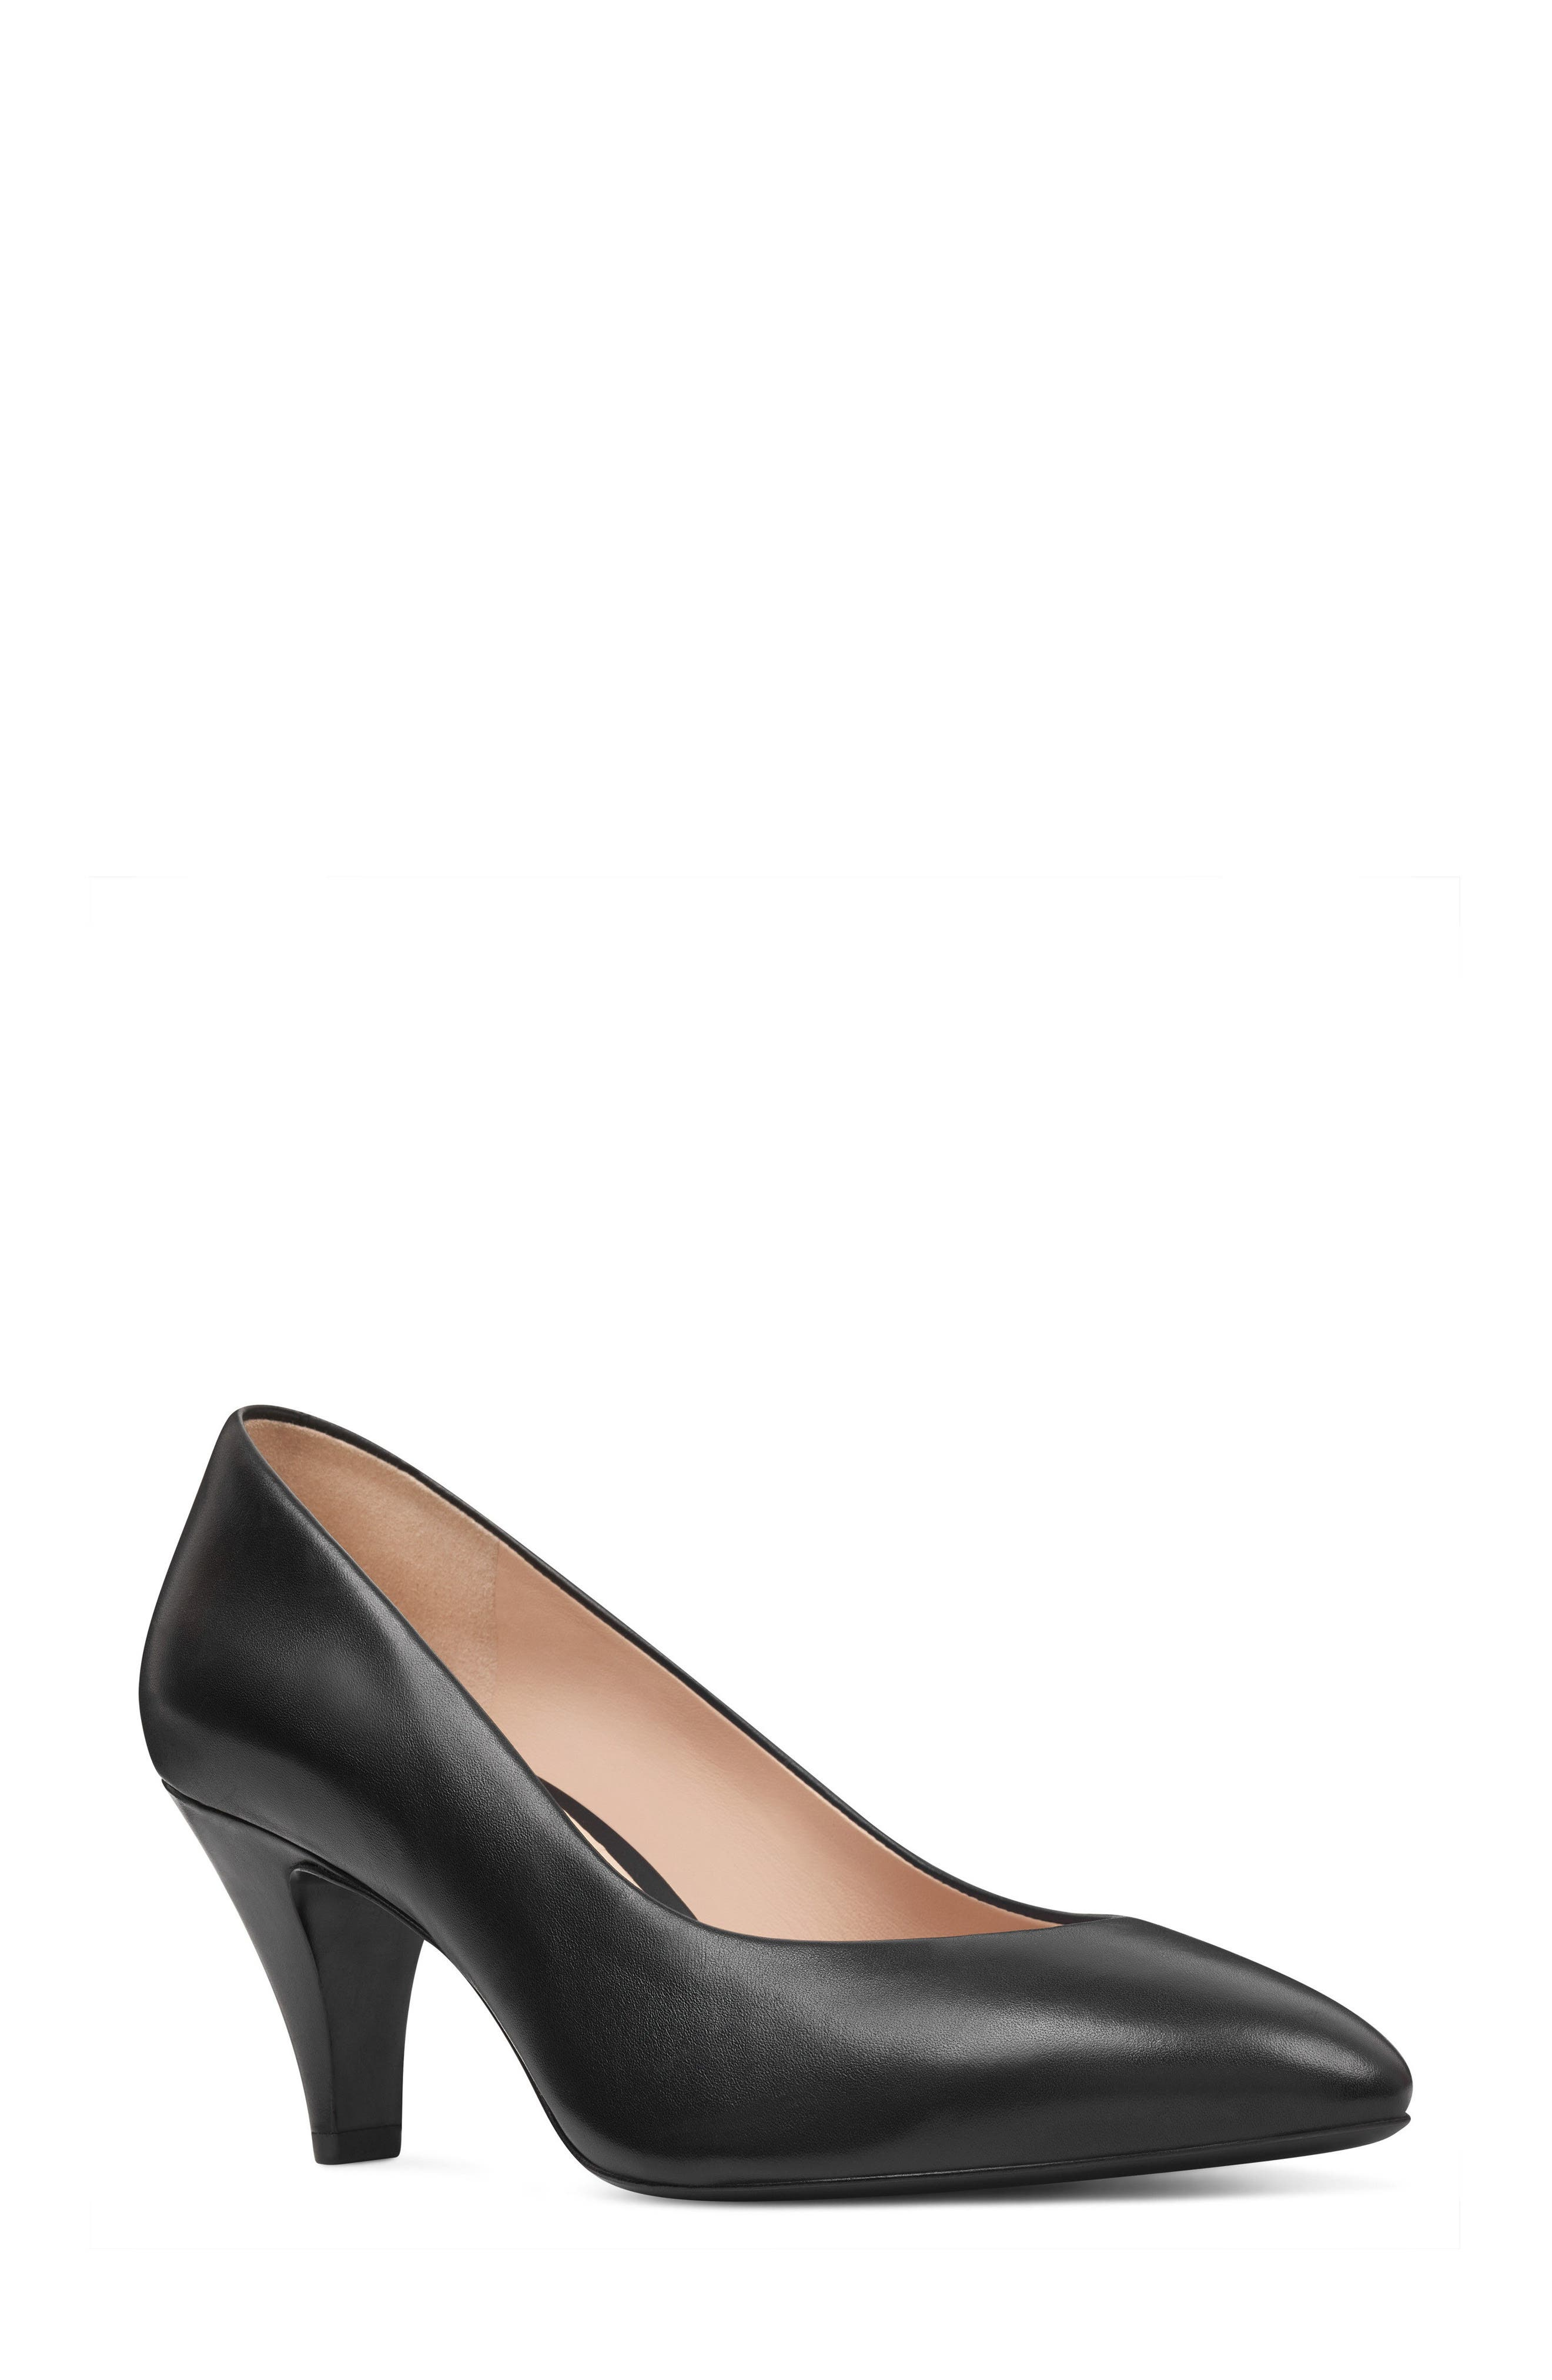 Faith - 40th Anniversary Capsule Collection Pump,                         Main,                         color, BLACK LEATHER